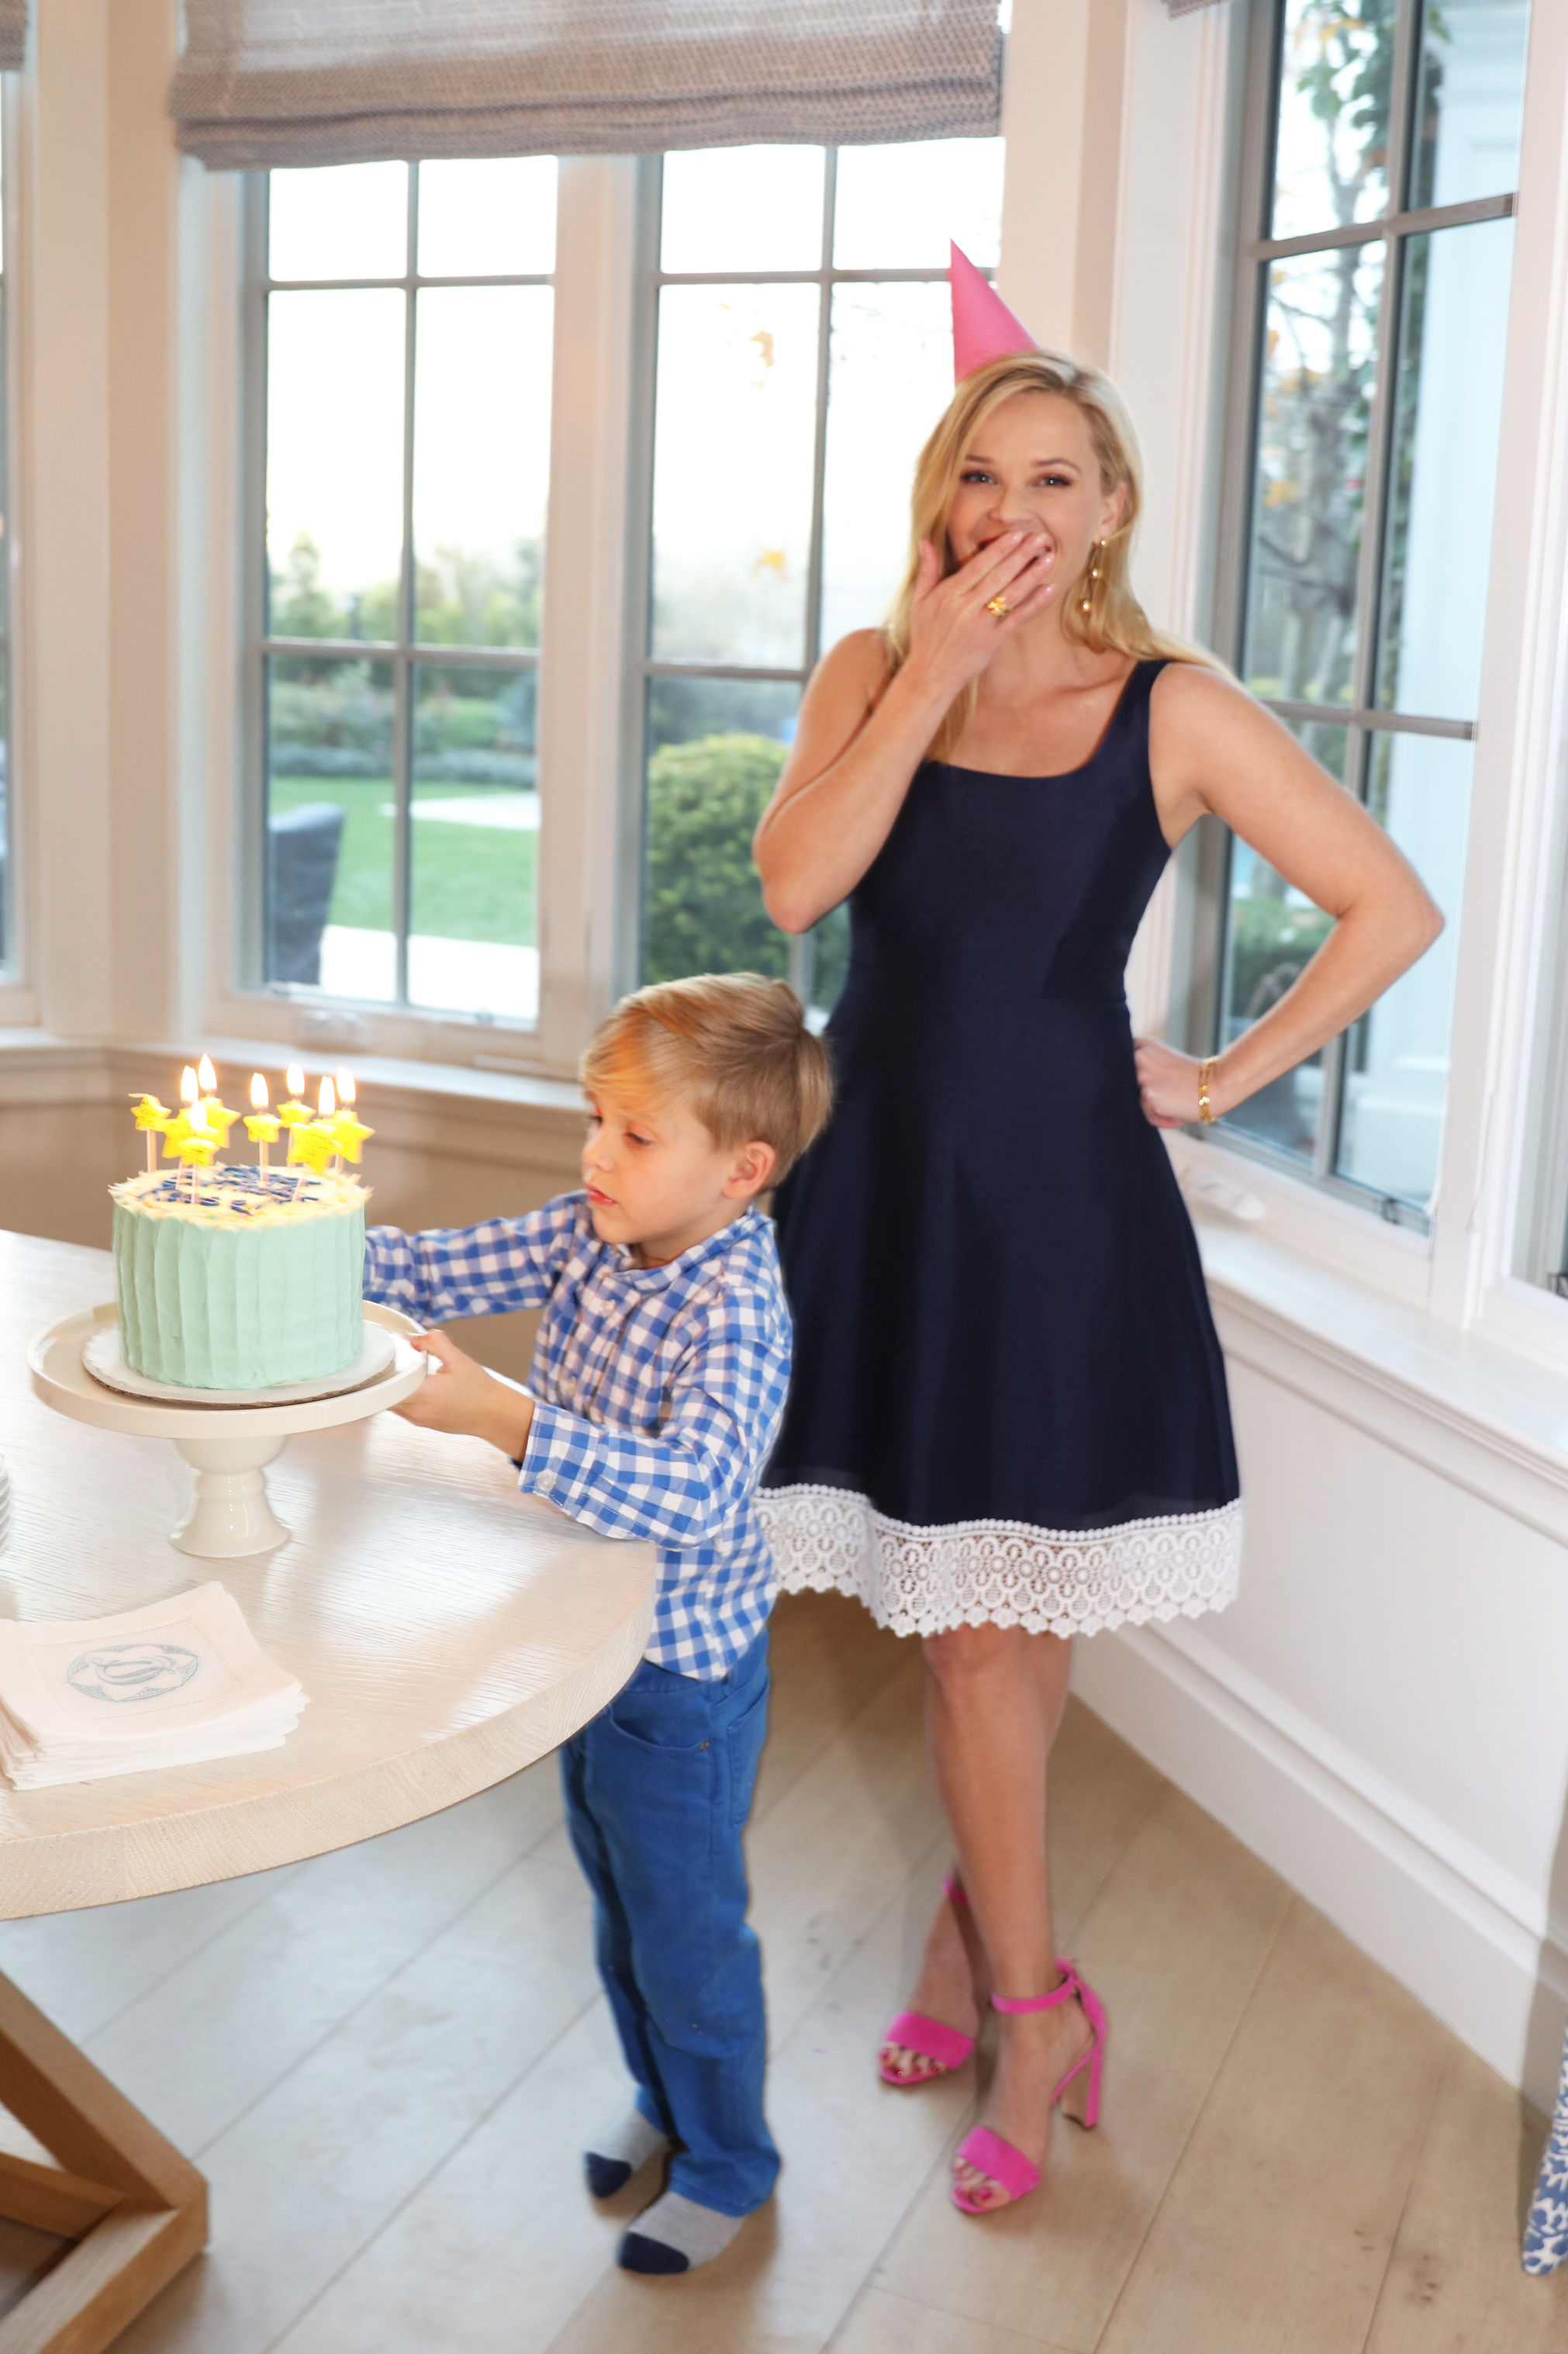 Celebrate Reese Witherspoon's 42nd Birthday With 20% Off Her Draper James Favorites